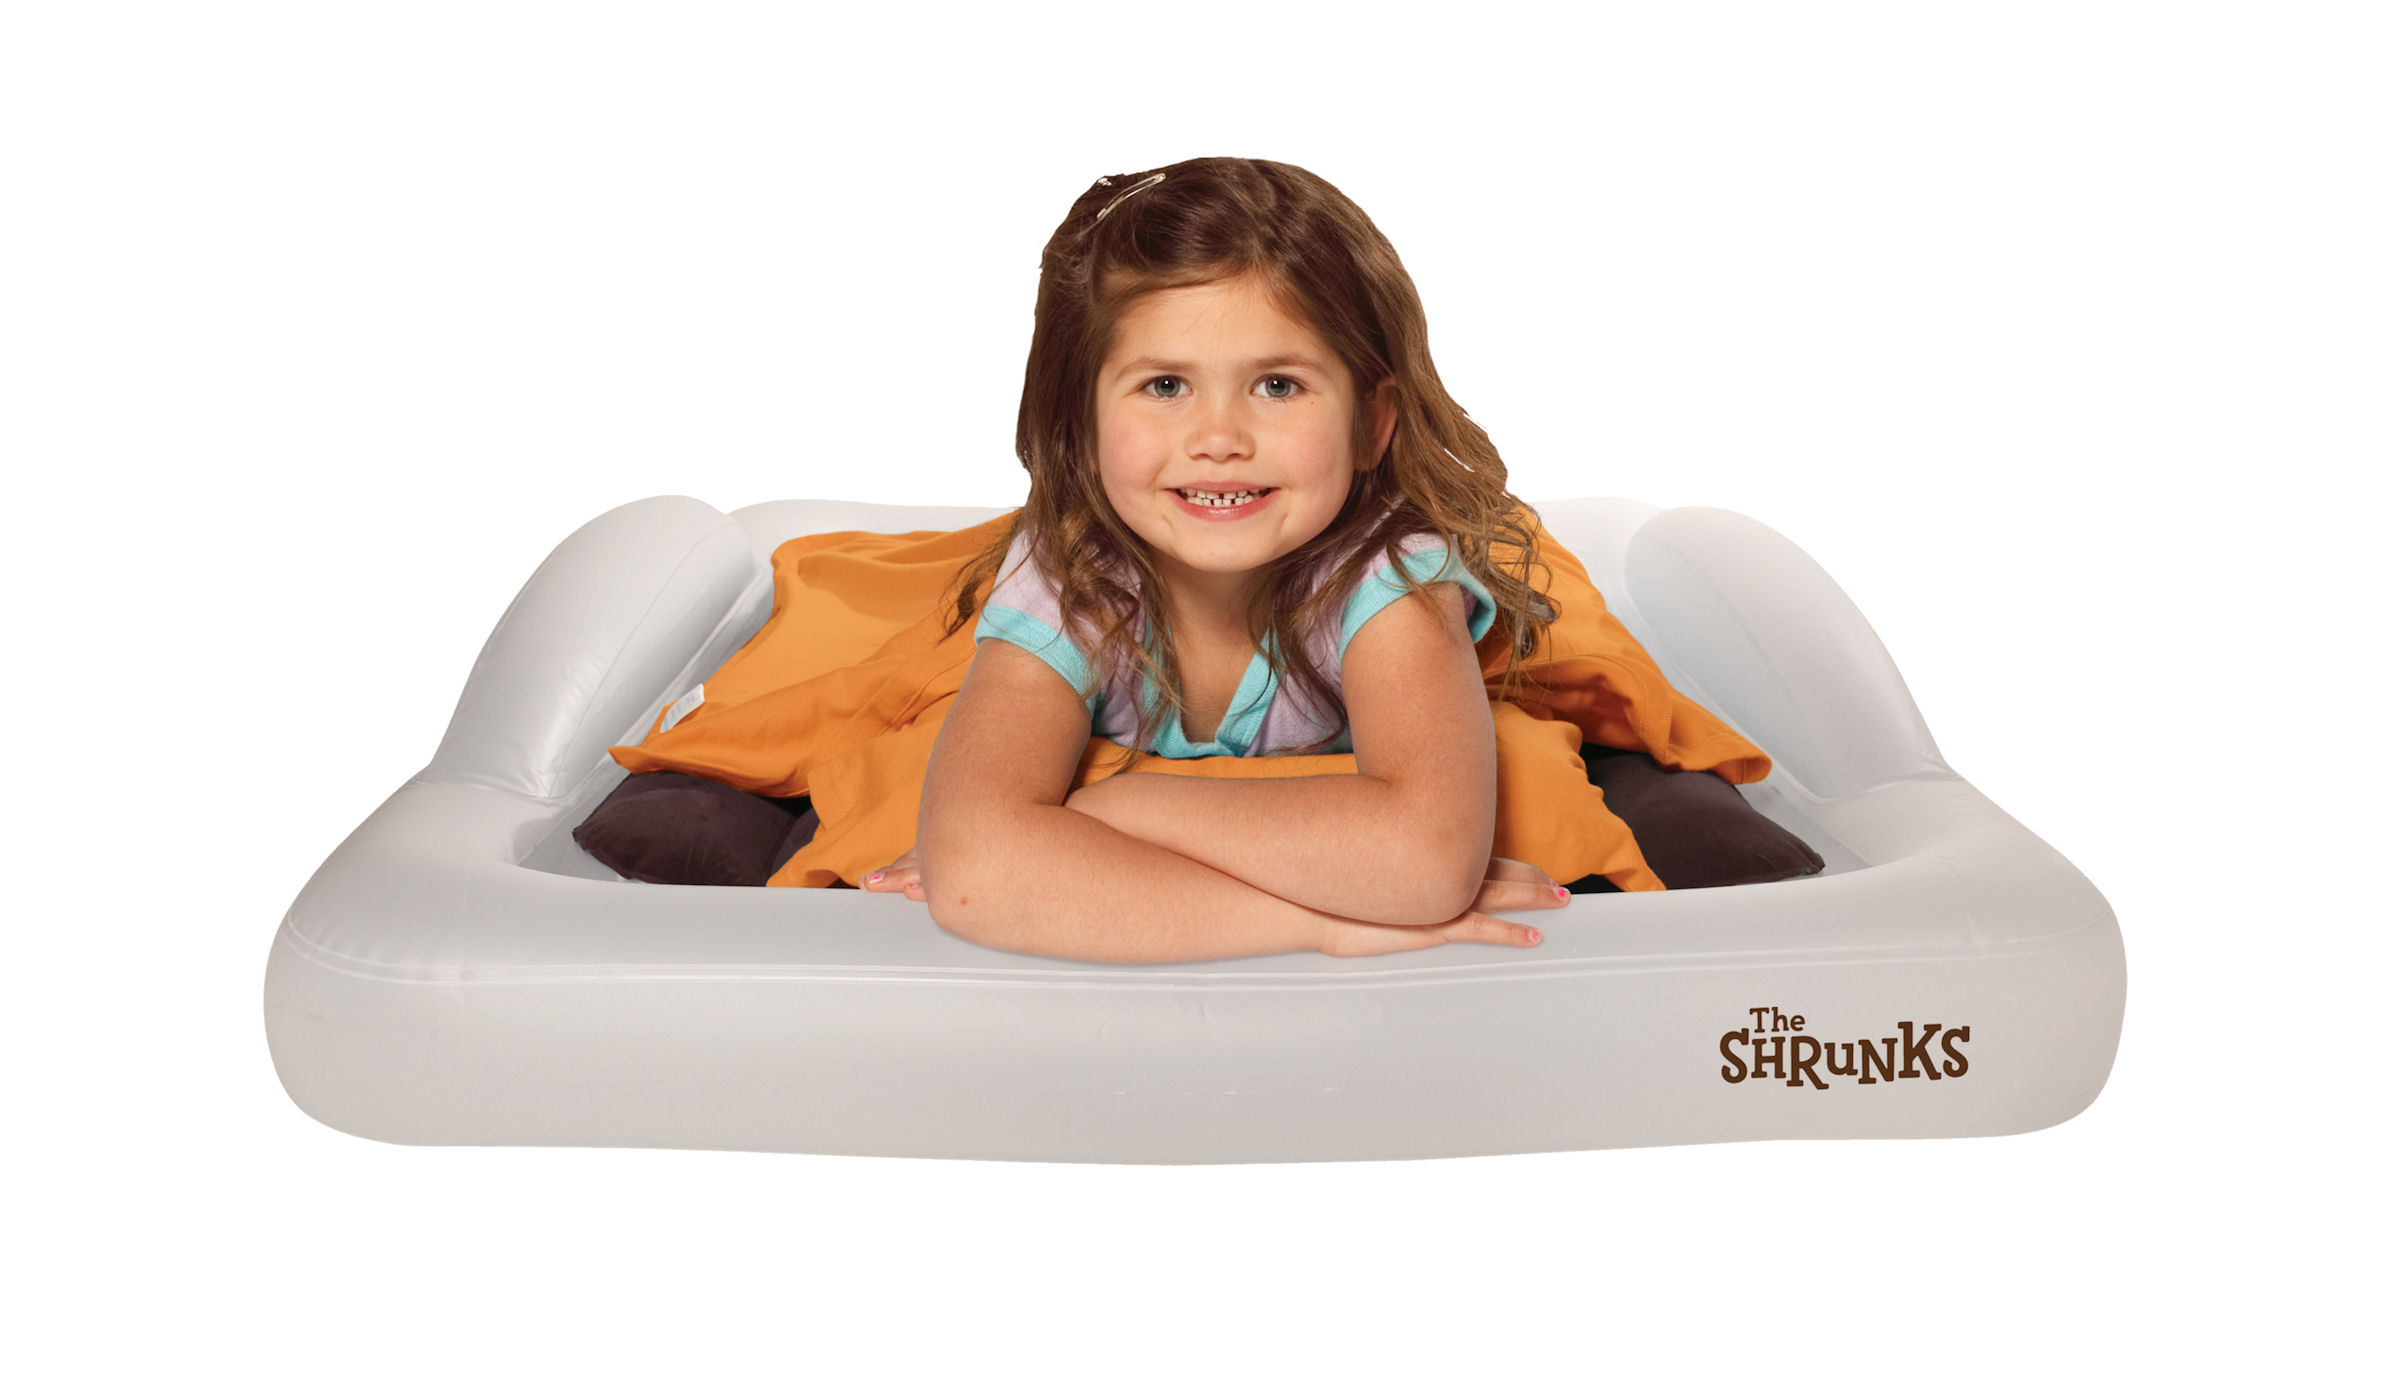 Tuckaire Indoor Toddler Travel Bed-inflatable bed, mattress, shrunks